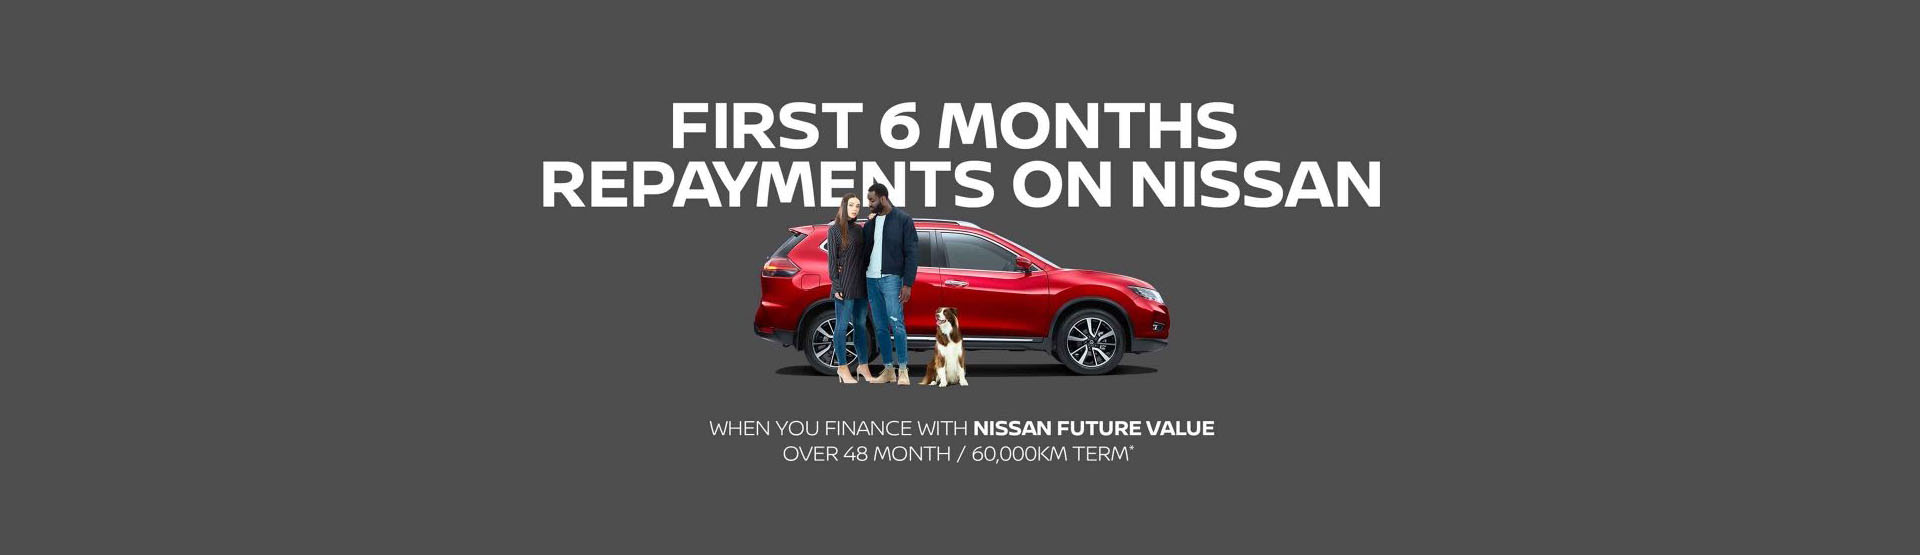 Repayments on Nissan